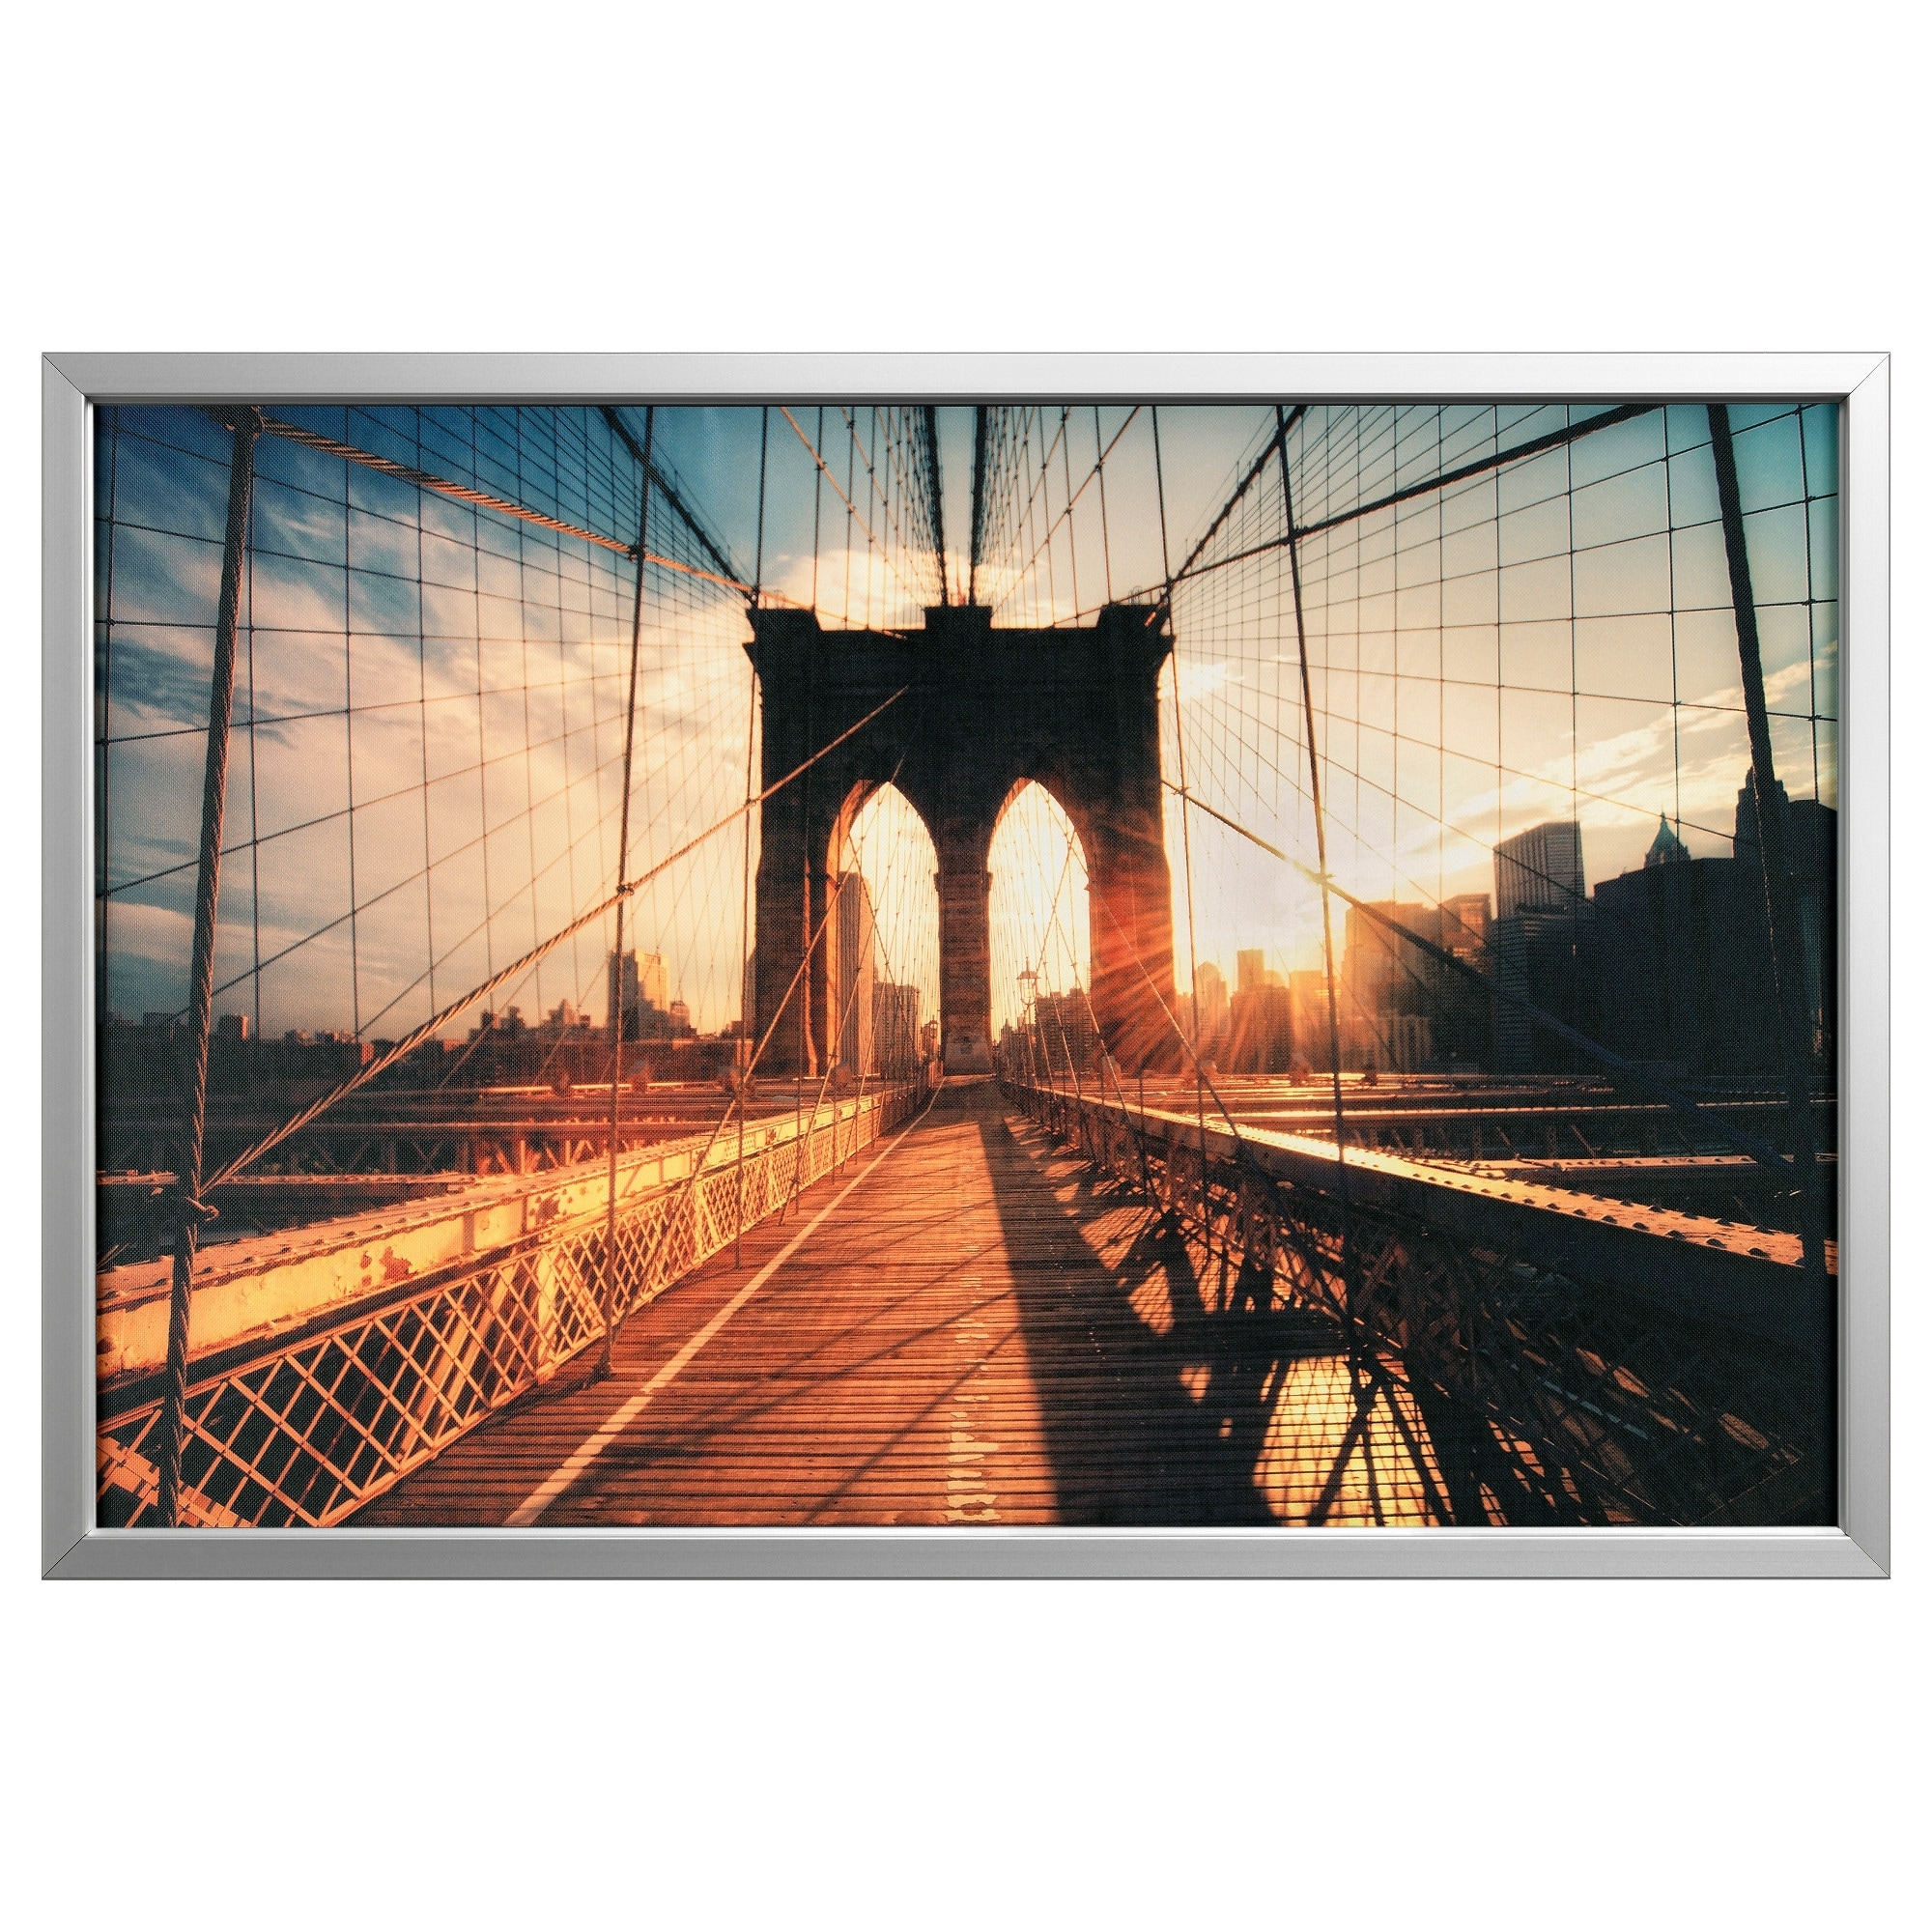 Ikea Canvas Wall Art with Well known Canvas Prints & Art - Framed Pictures - Ikea